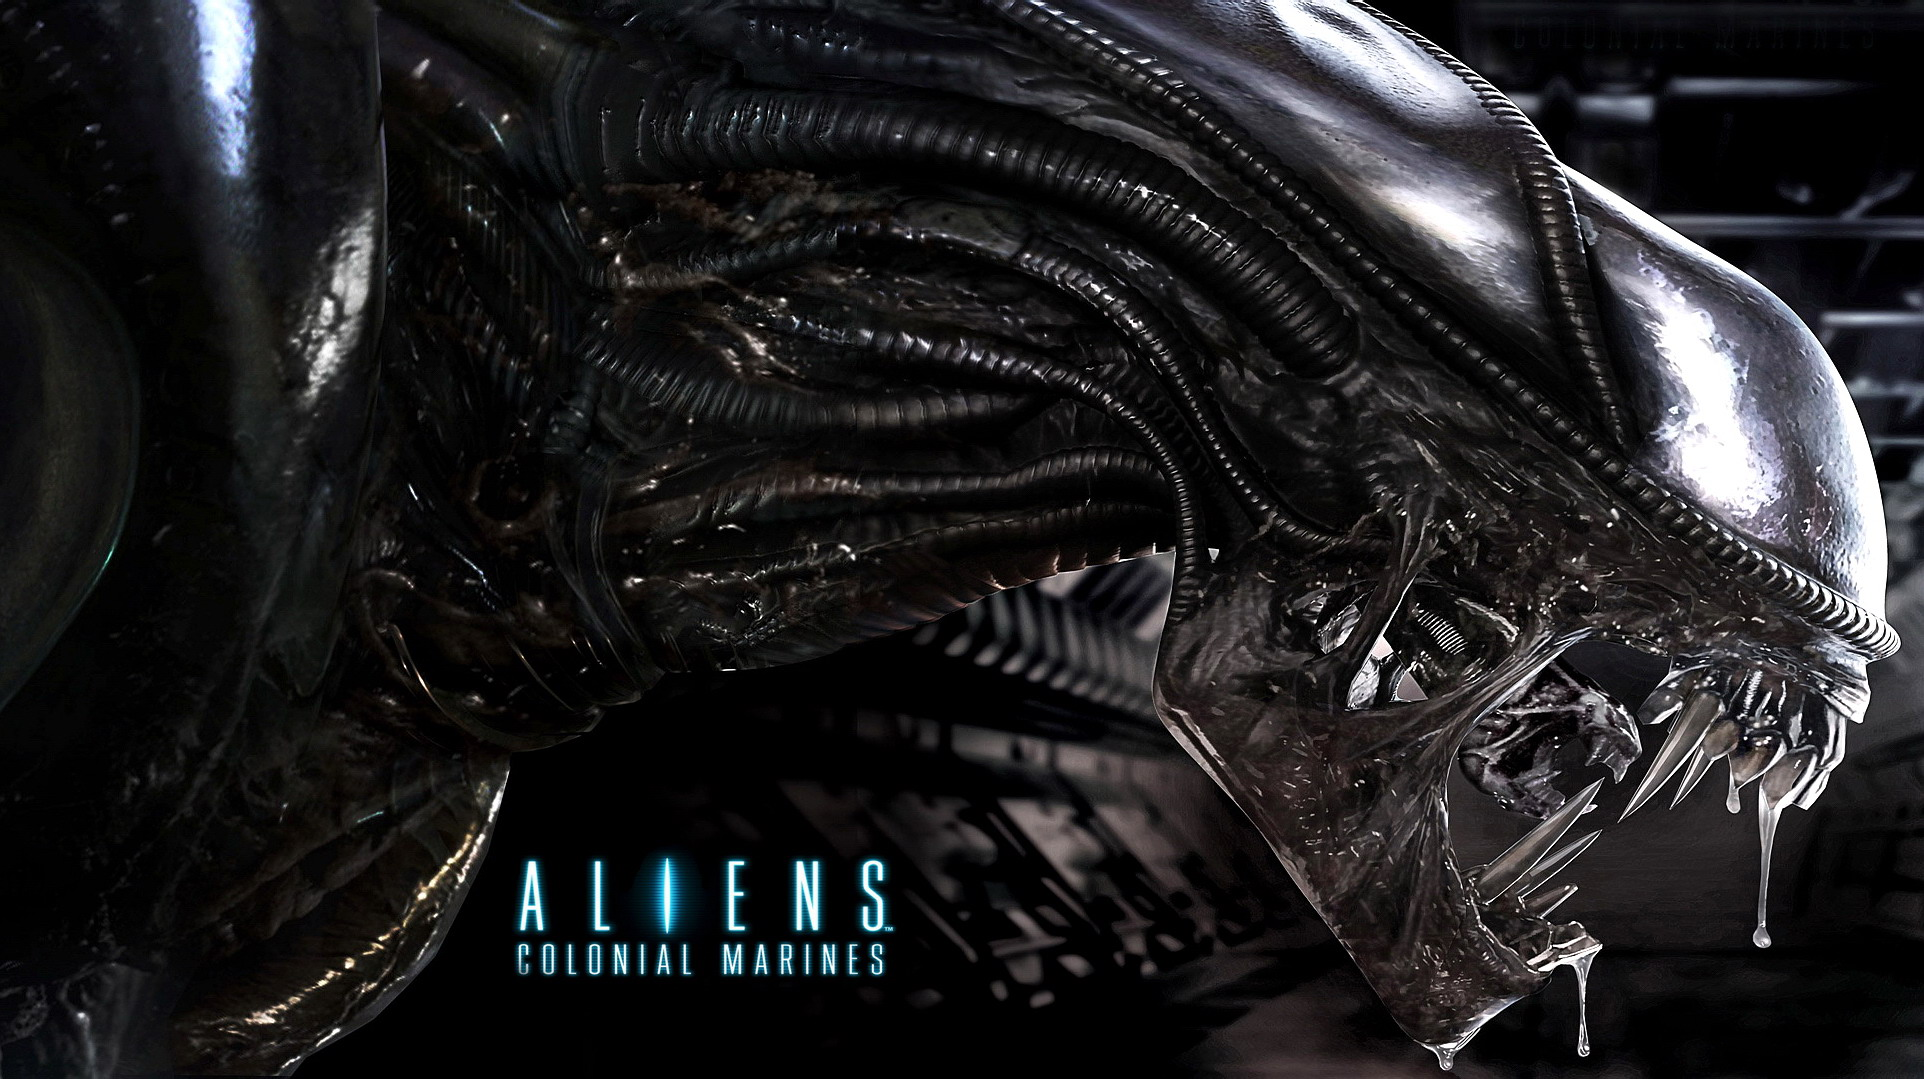 53 aliens colonial marines hd wallpapers backgrounds